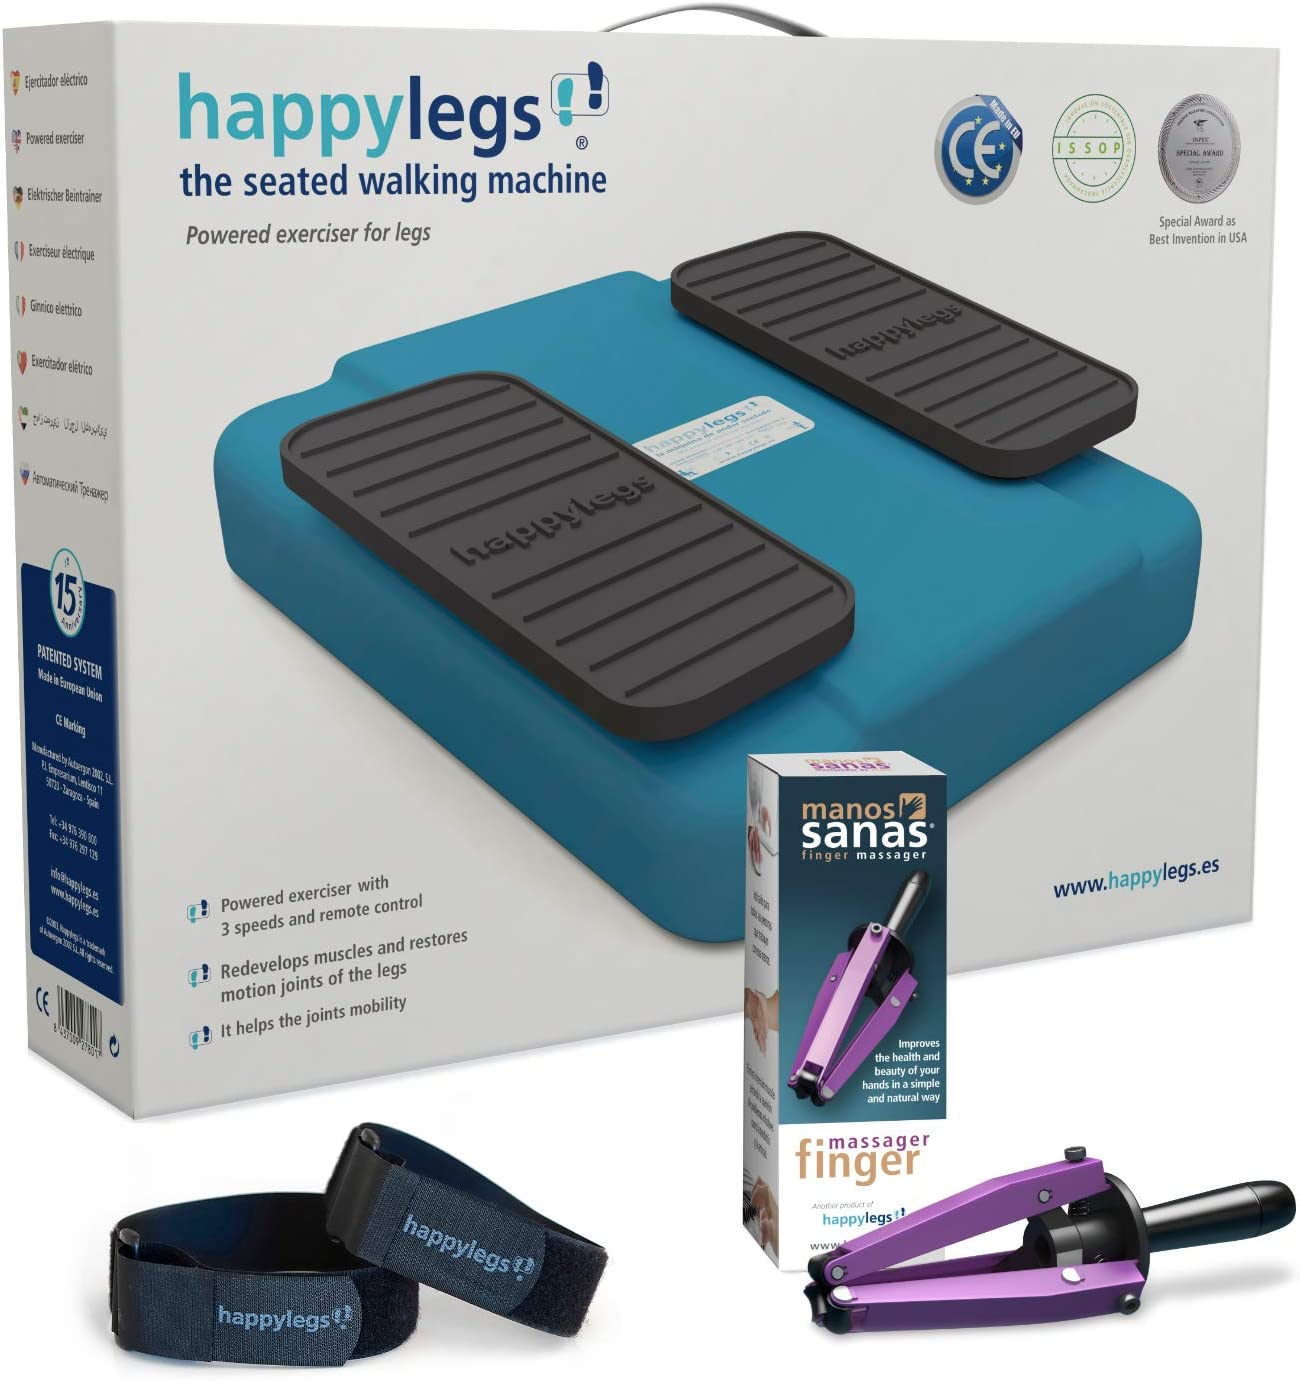 happylegs pack manos correas